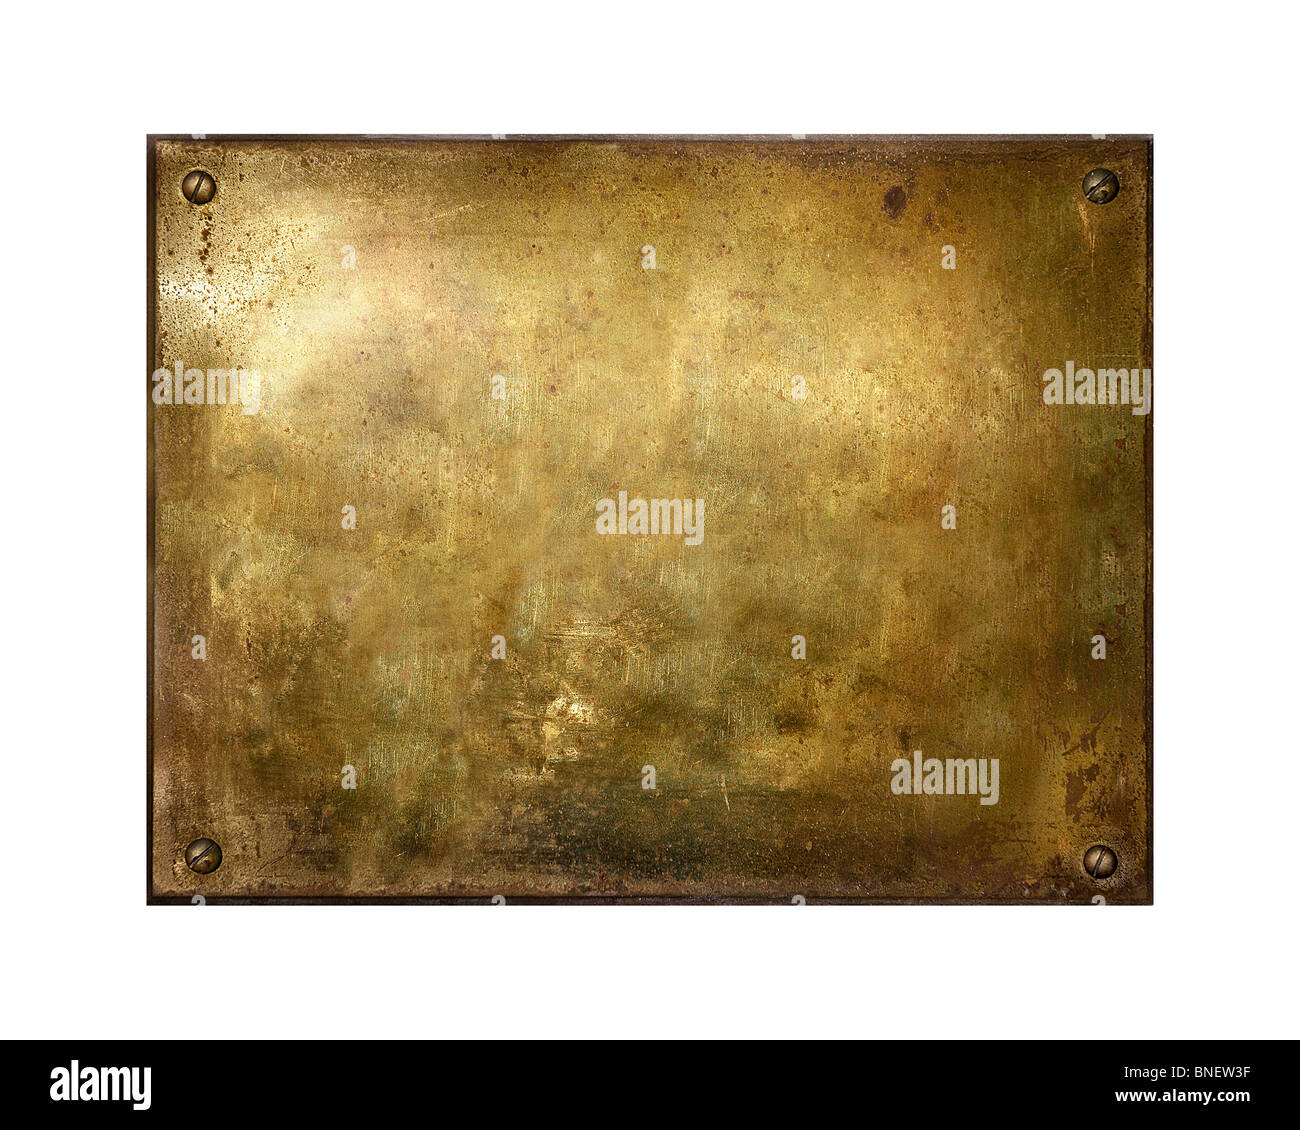 Grungy brushed yellow metal brass plate with screws - Stock Image